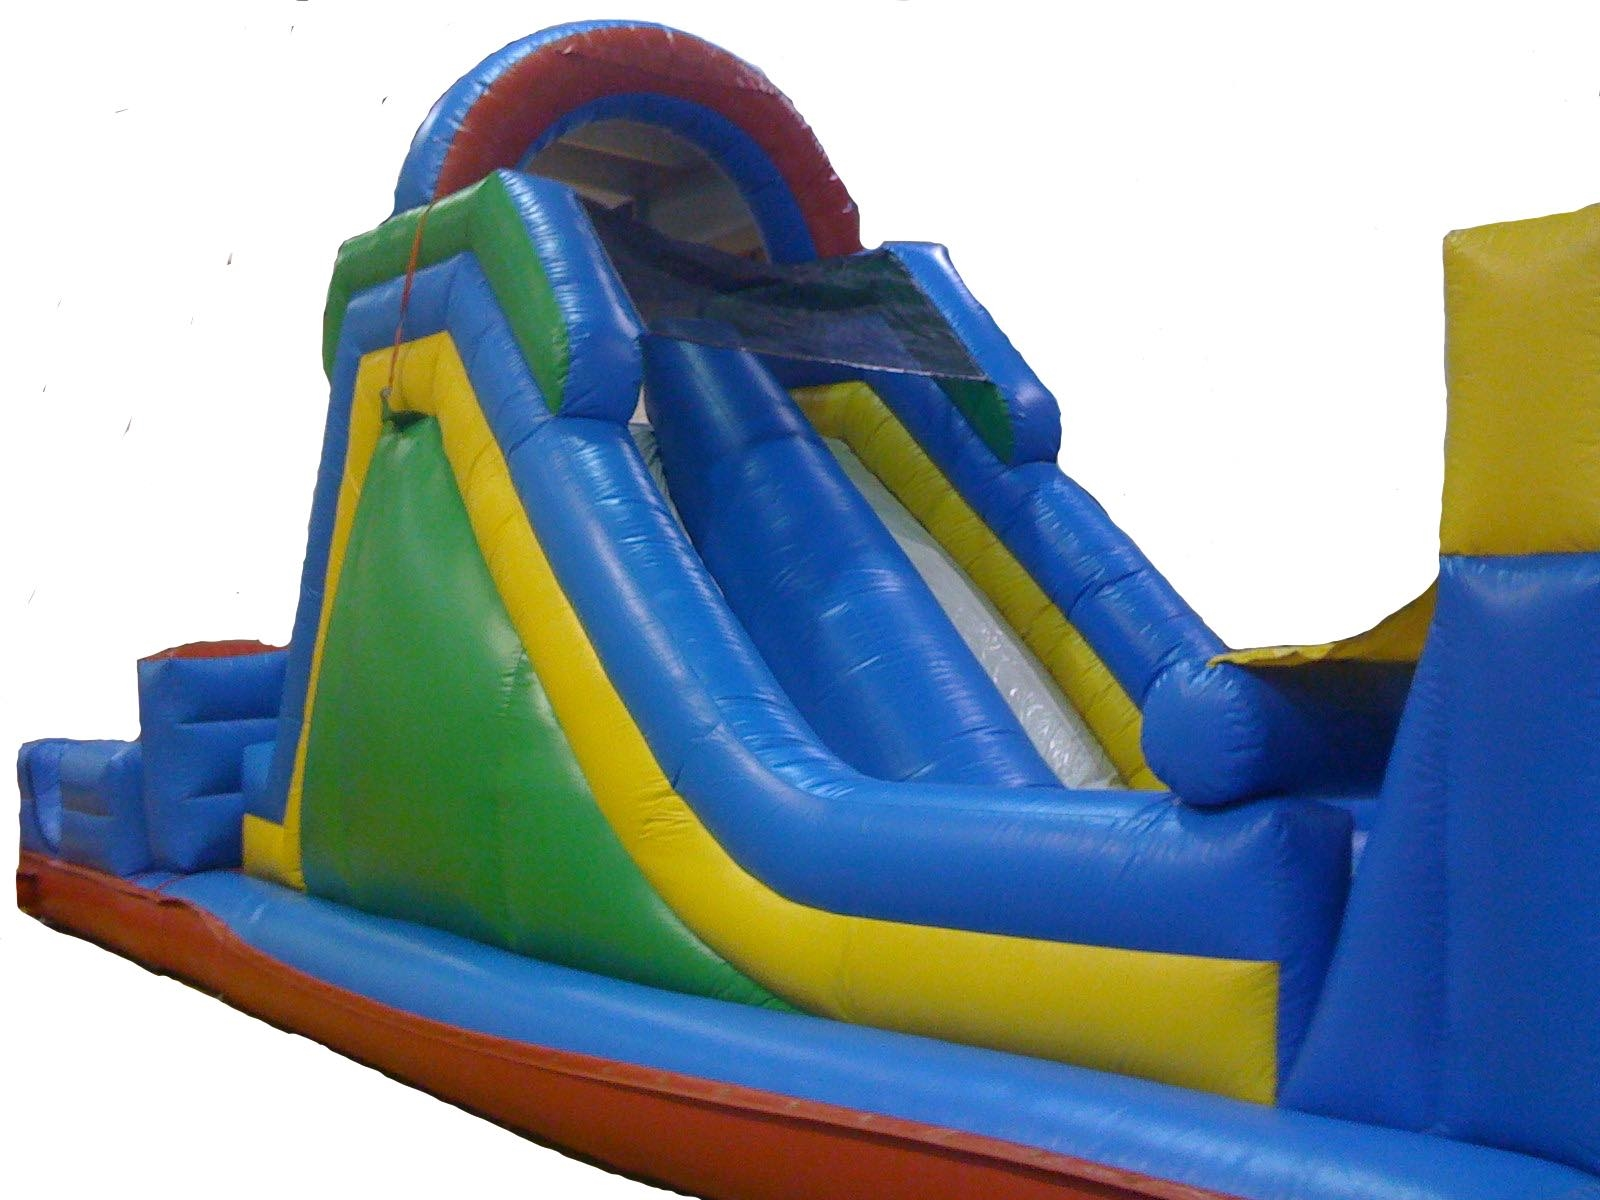 40 ft Adrenaline Rush Slide